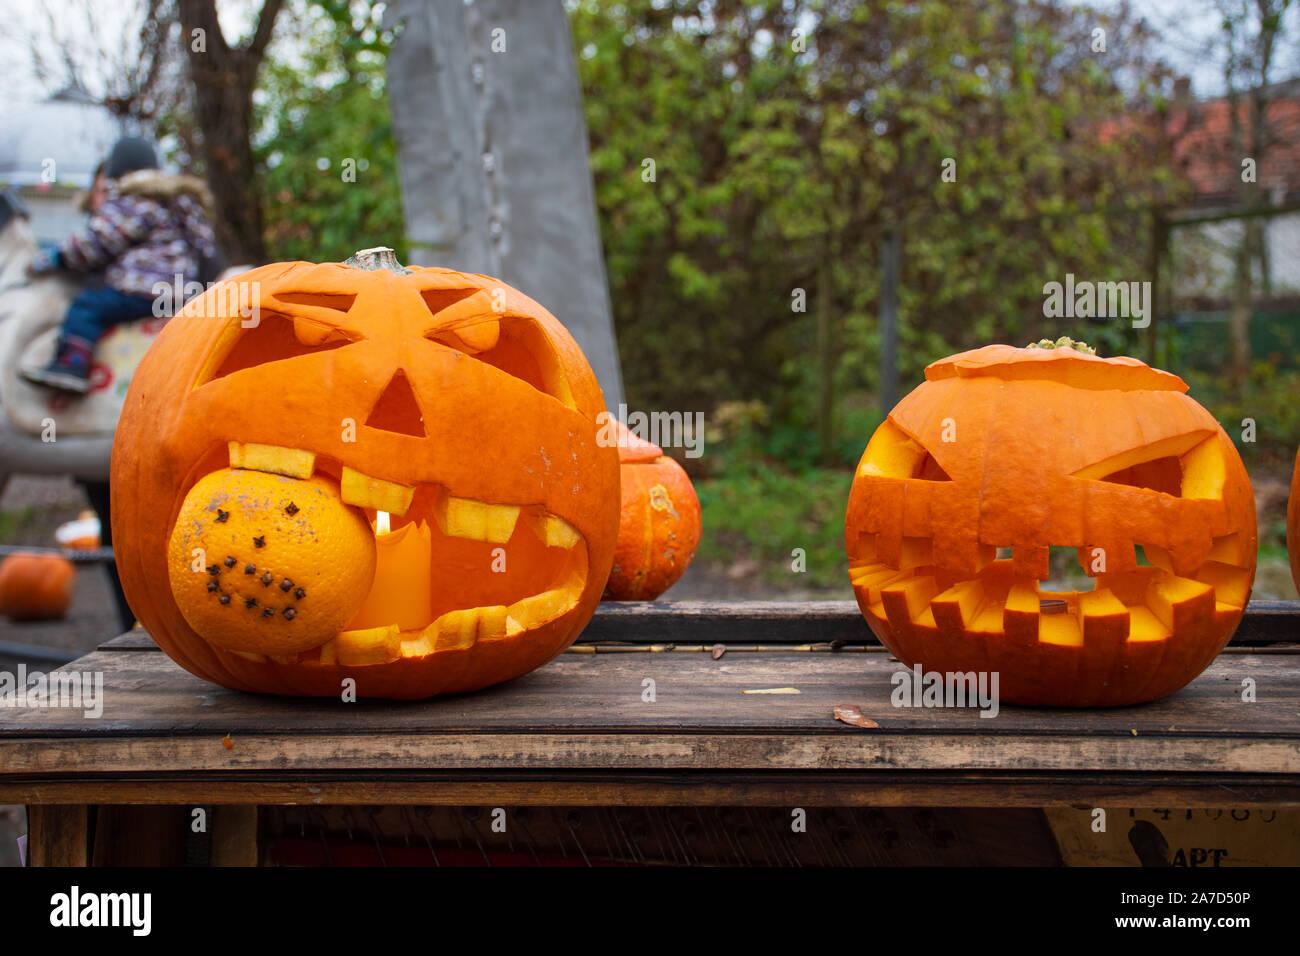 Spooky Funny Halloween Pumpkins Jack O Lantern With Burning Candle Stock Photo Alamy